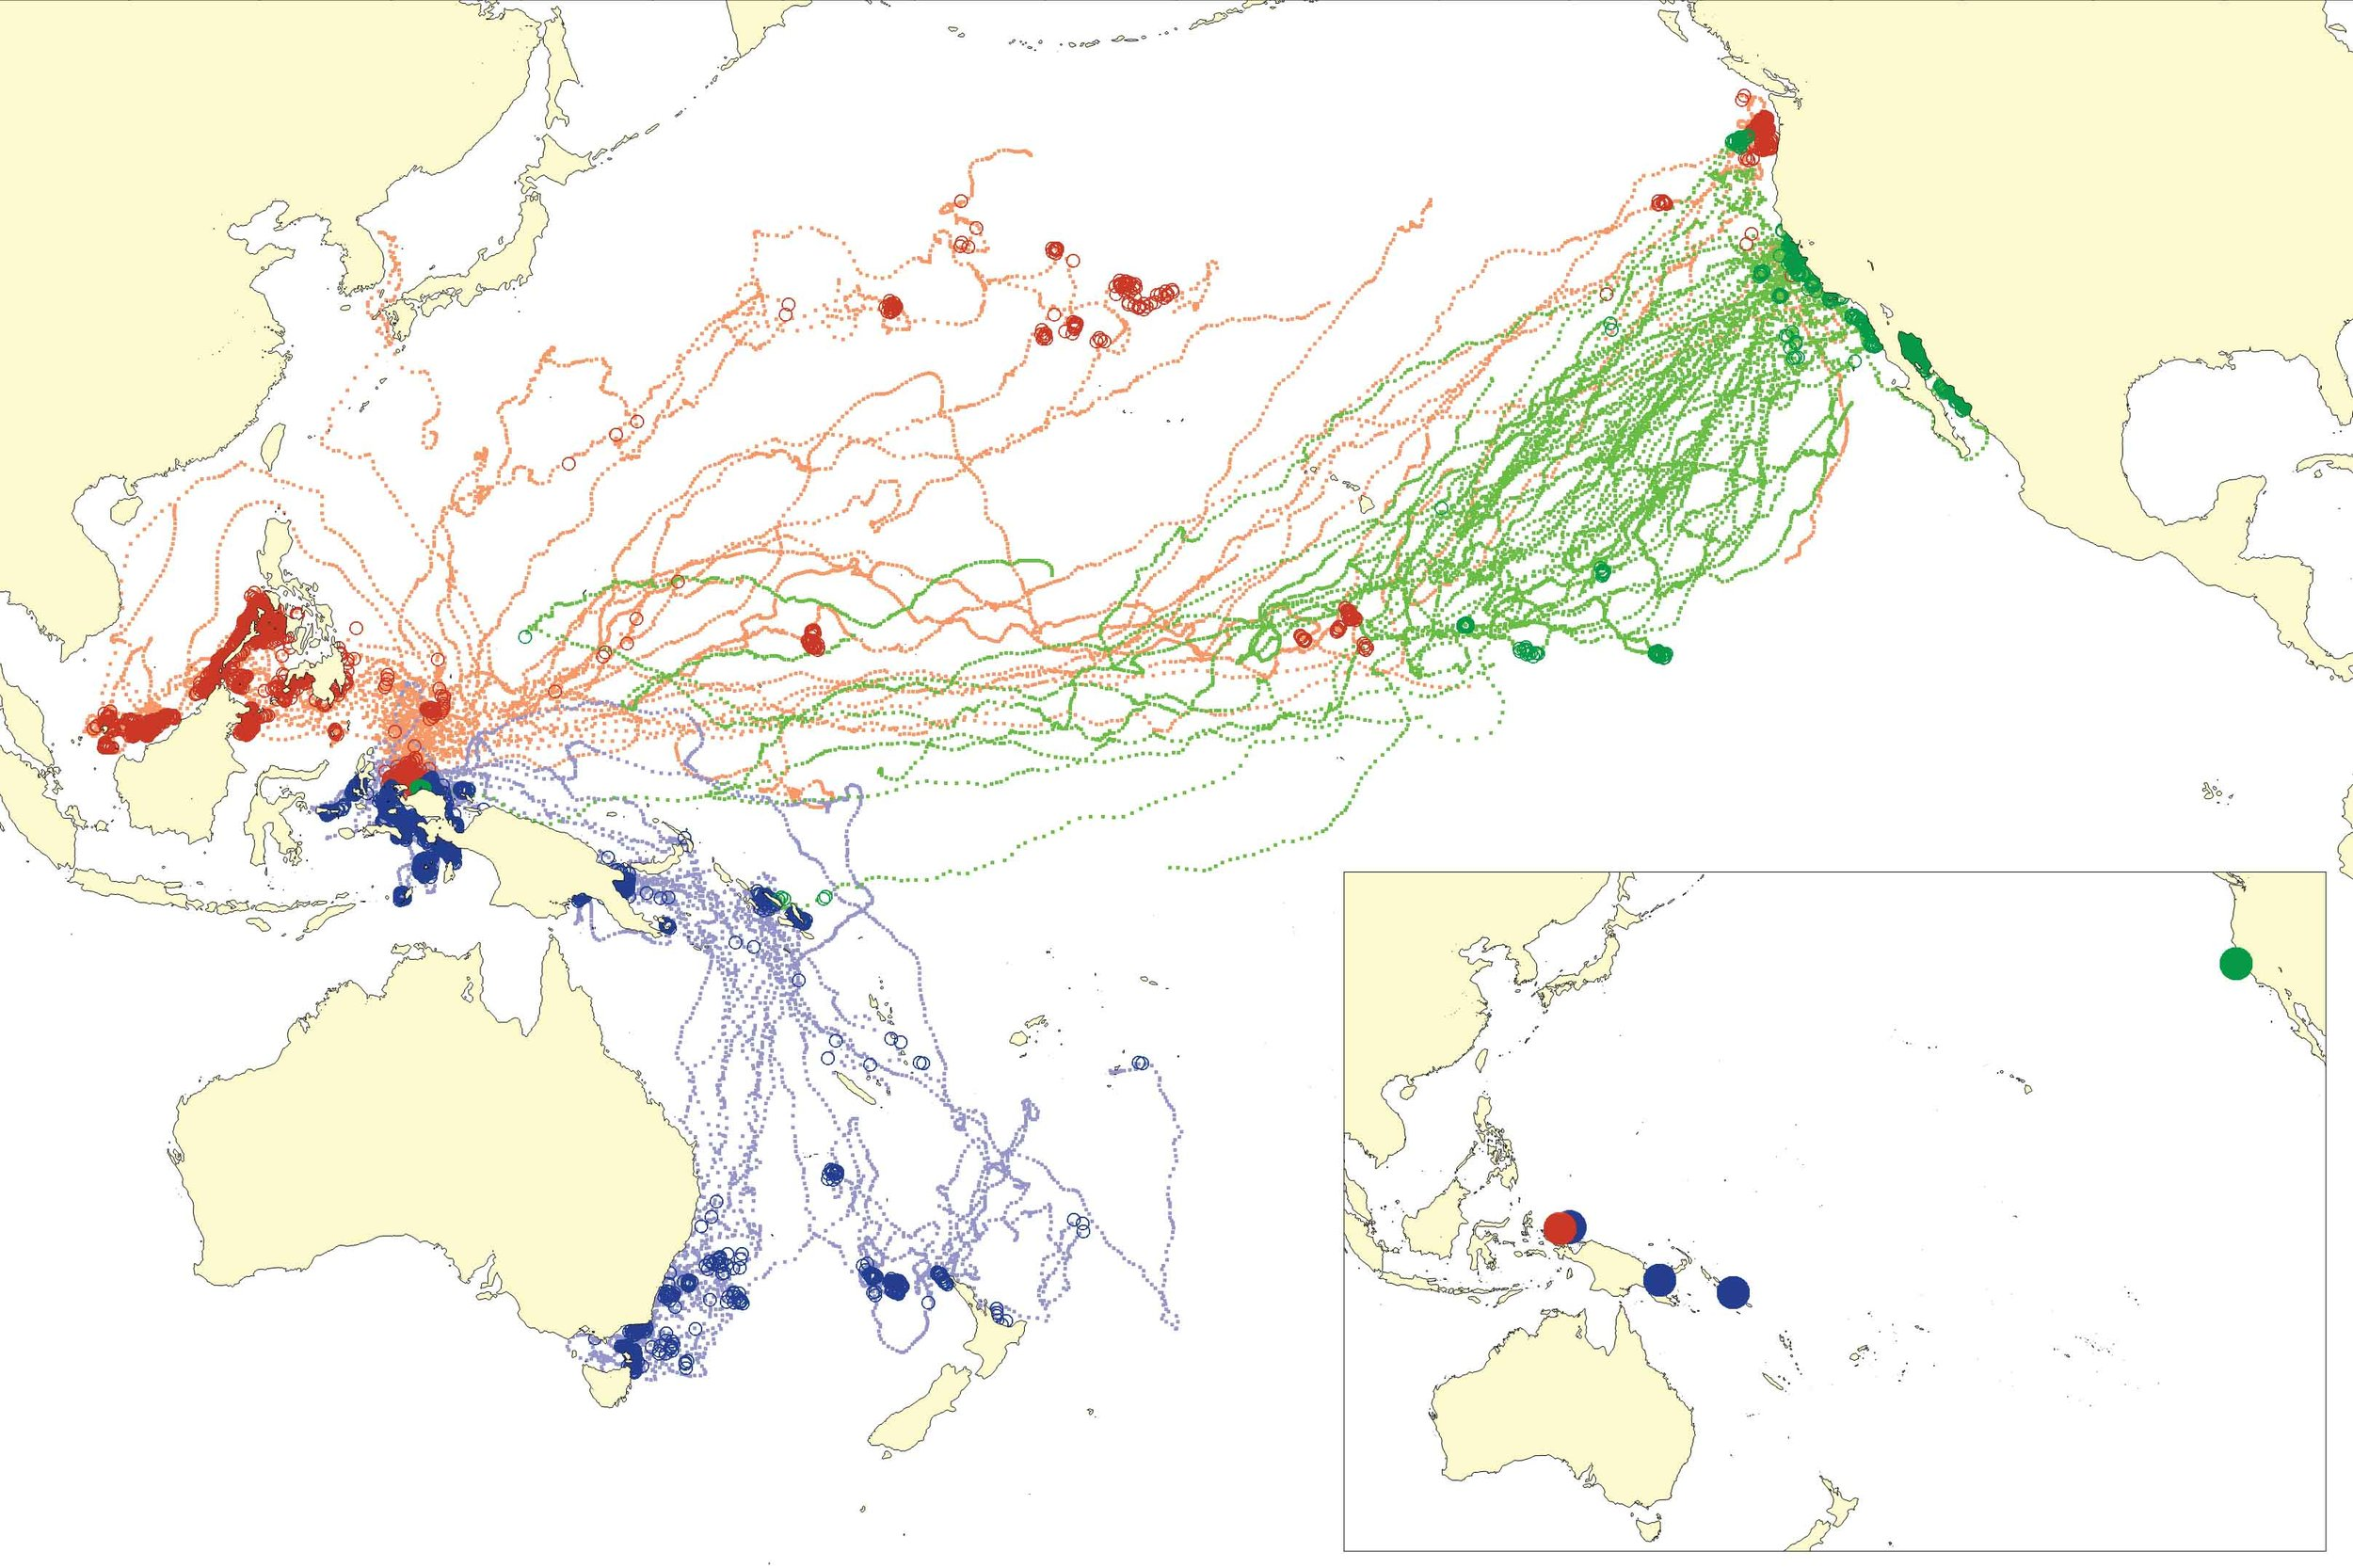 Satellite tracks of western Pacific leatherback turtles showing feeding areas (large, darker circles) and migrations (small, lighter circles). Track colors indicate deployment season: red = summer nesters, blue = winter nesters, green = deployments at central California foraging grounds. Inset shows deployment locations; PBI = Papua Barat, Indonesia; PNG = Papua New Guinea; SI = Solomon Islands; CCA = central California.